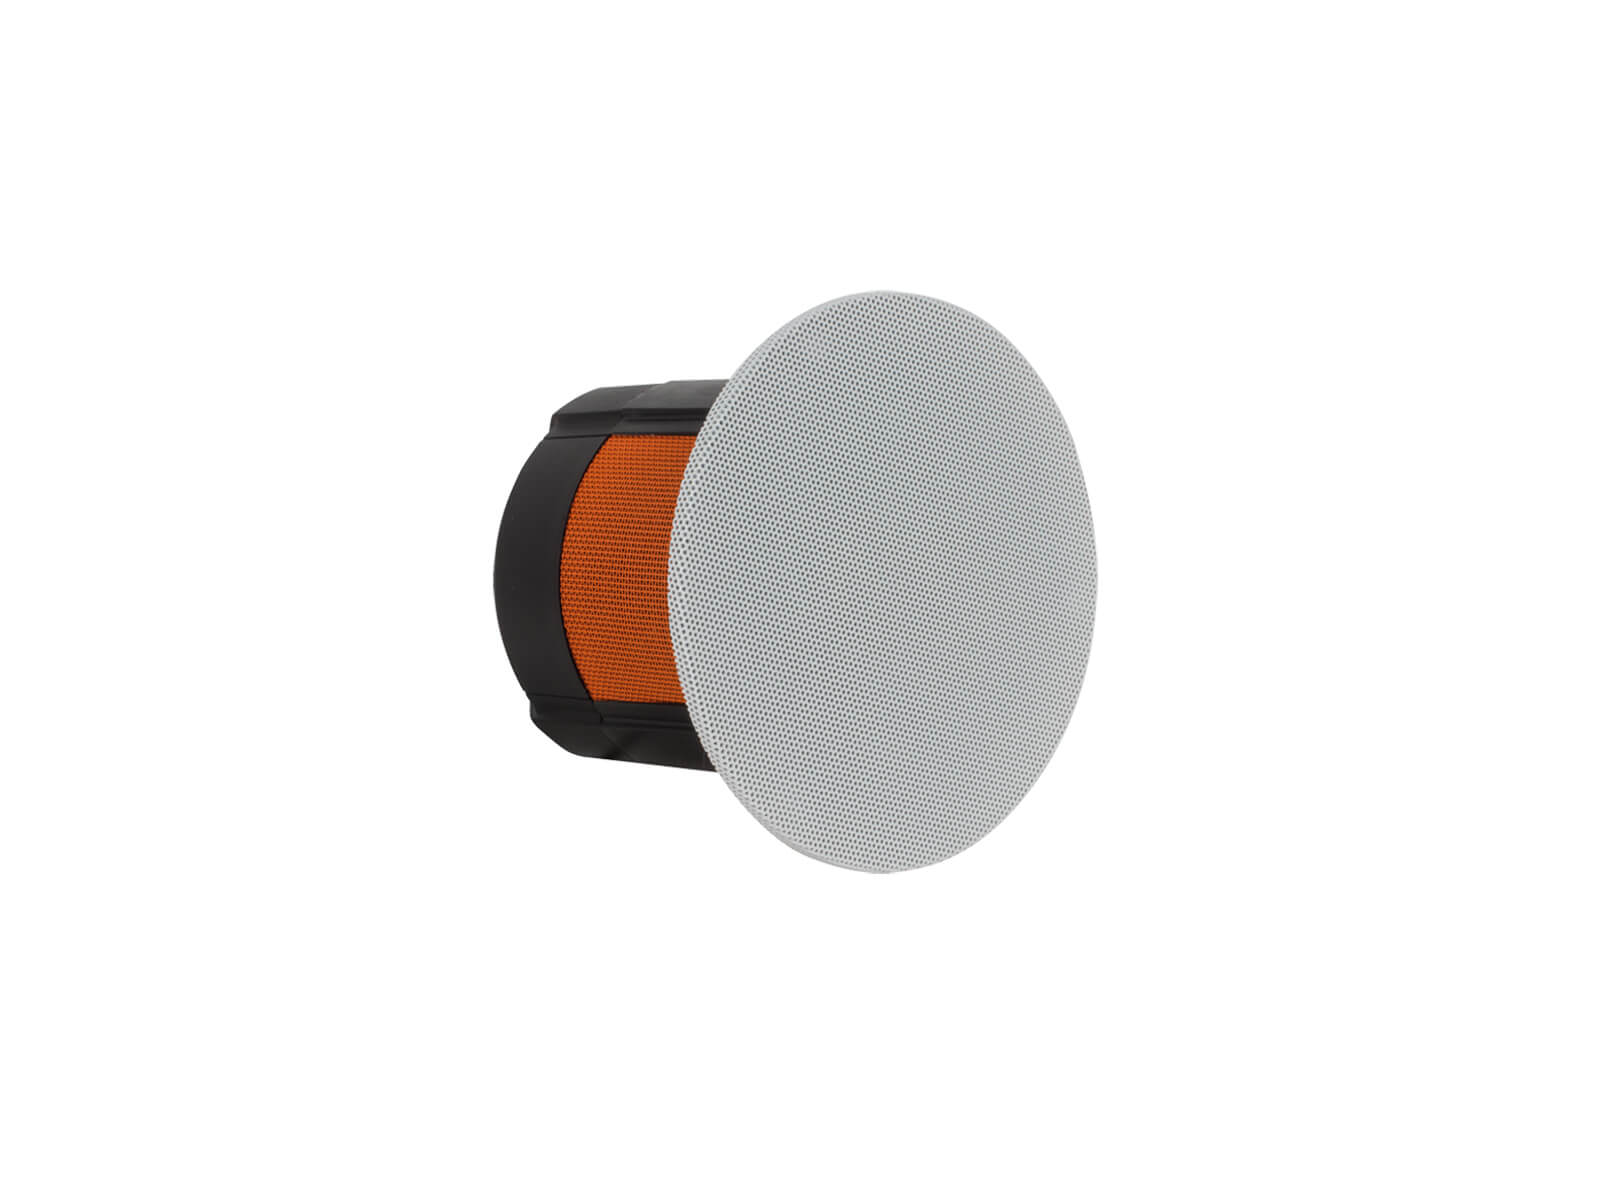 Flush Fit CF230, front ISO, in-ceiling speakers with a round grille